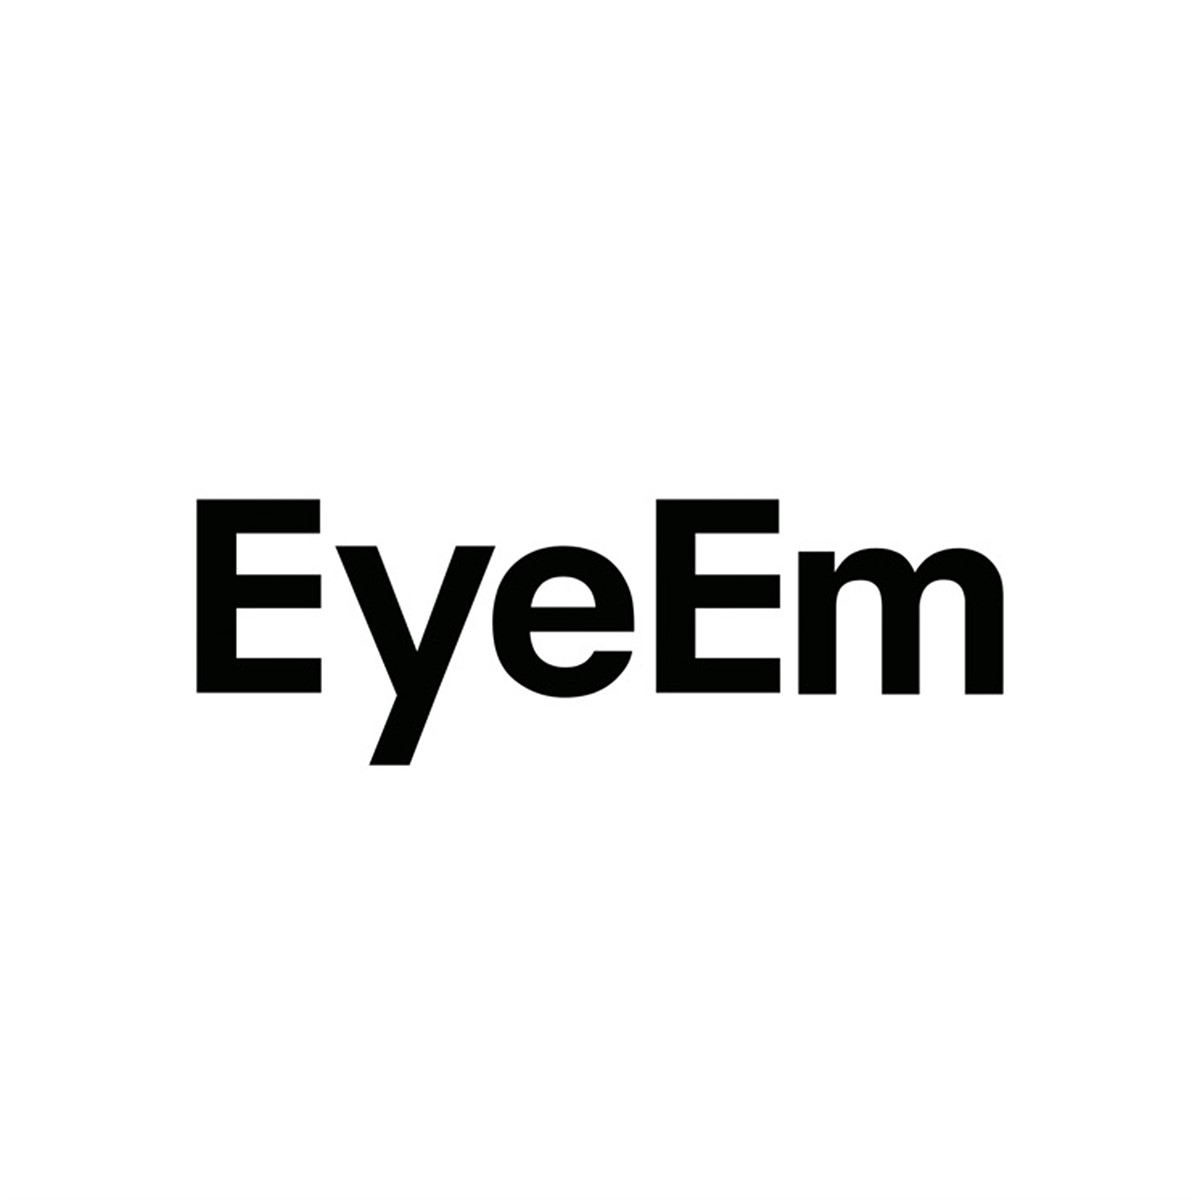 EyeEm, Fotolog and other photo sites affected by security